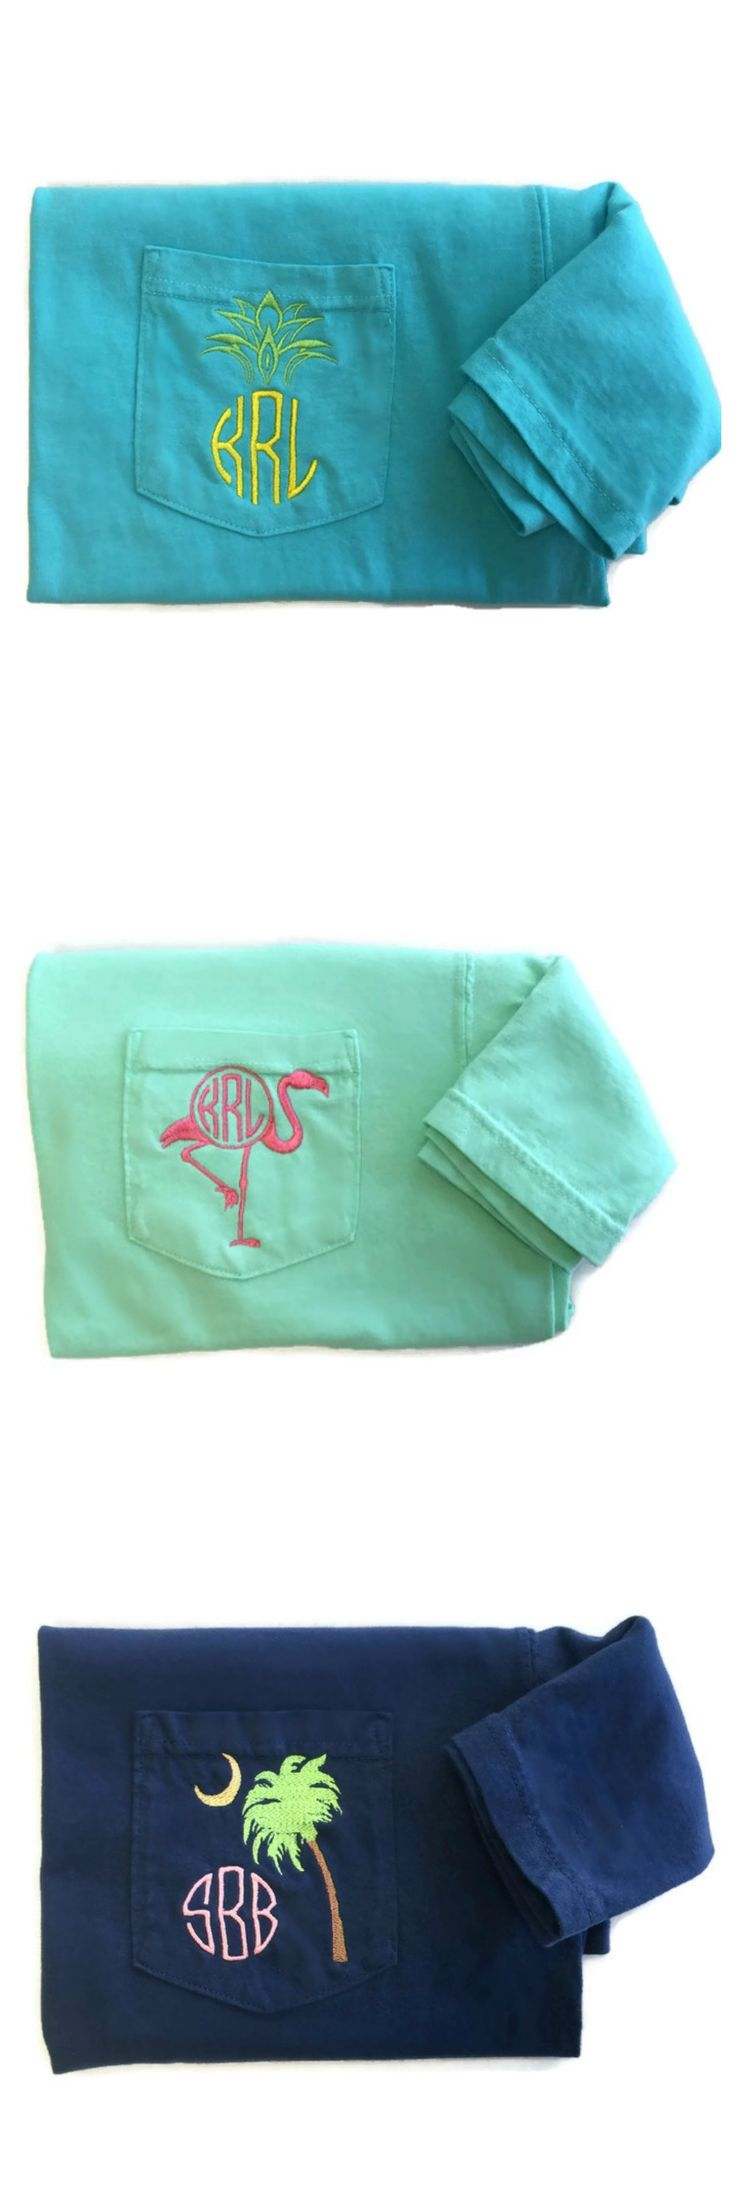 Monogrammed pocket tee summer collection by The Initialed Life. Re-pin if you like and/or click to view more of our shirts!